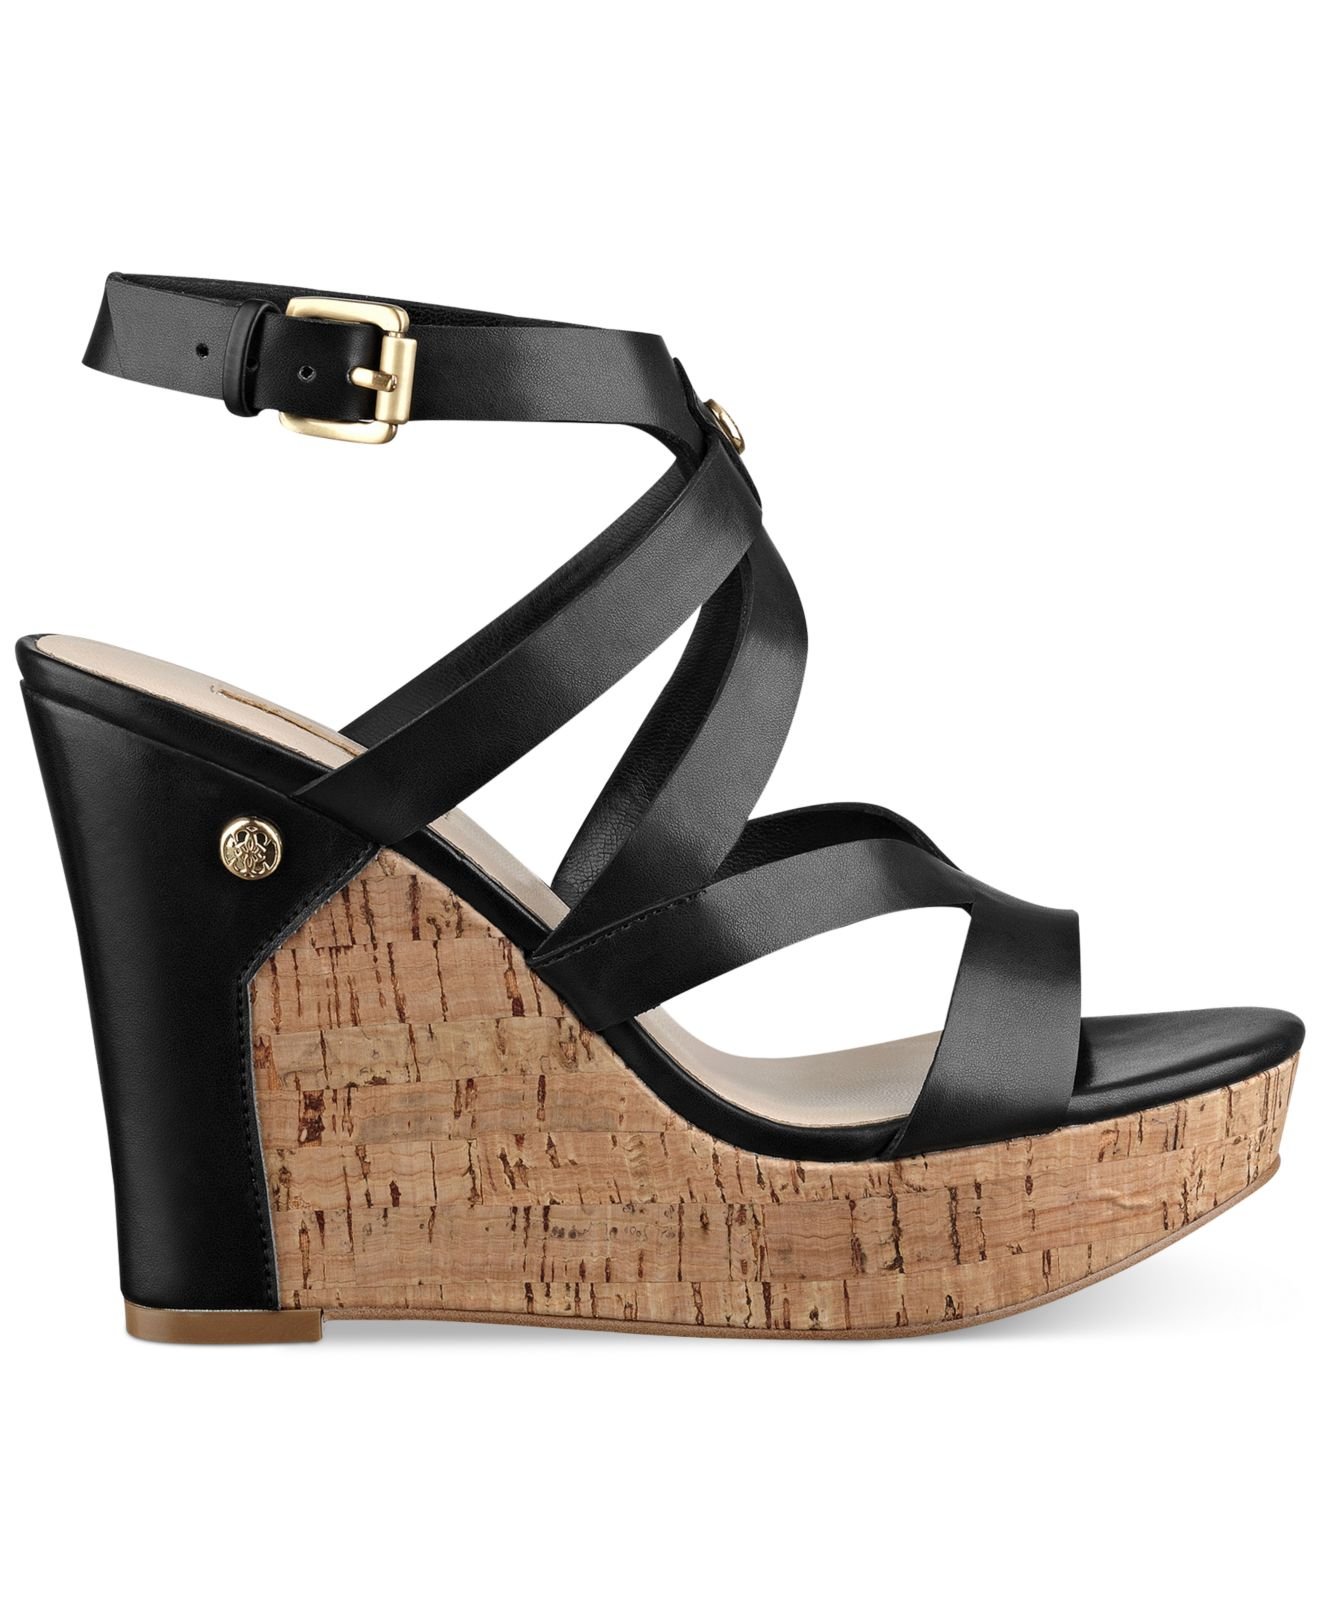 ca3c0591033e80 Lyst - Guess Women s Harlee Cork Platform Wedge Sandals in Black